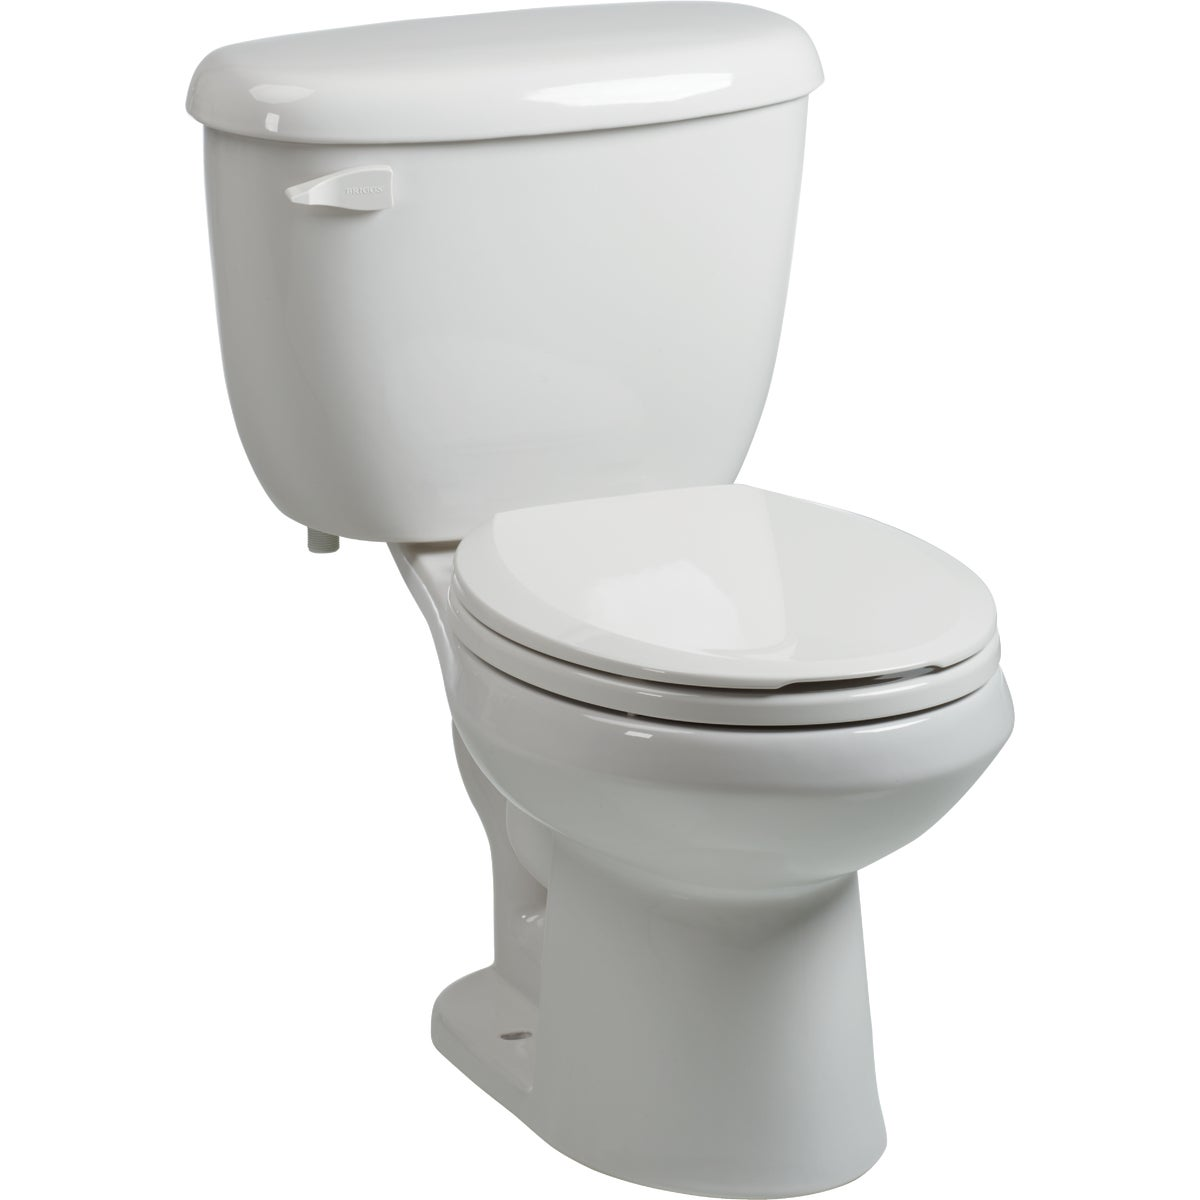 WHT TOILET EXPRESS - 7001-130 by Briggs